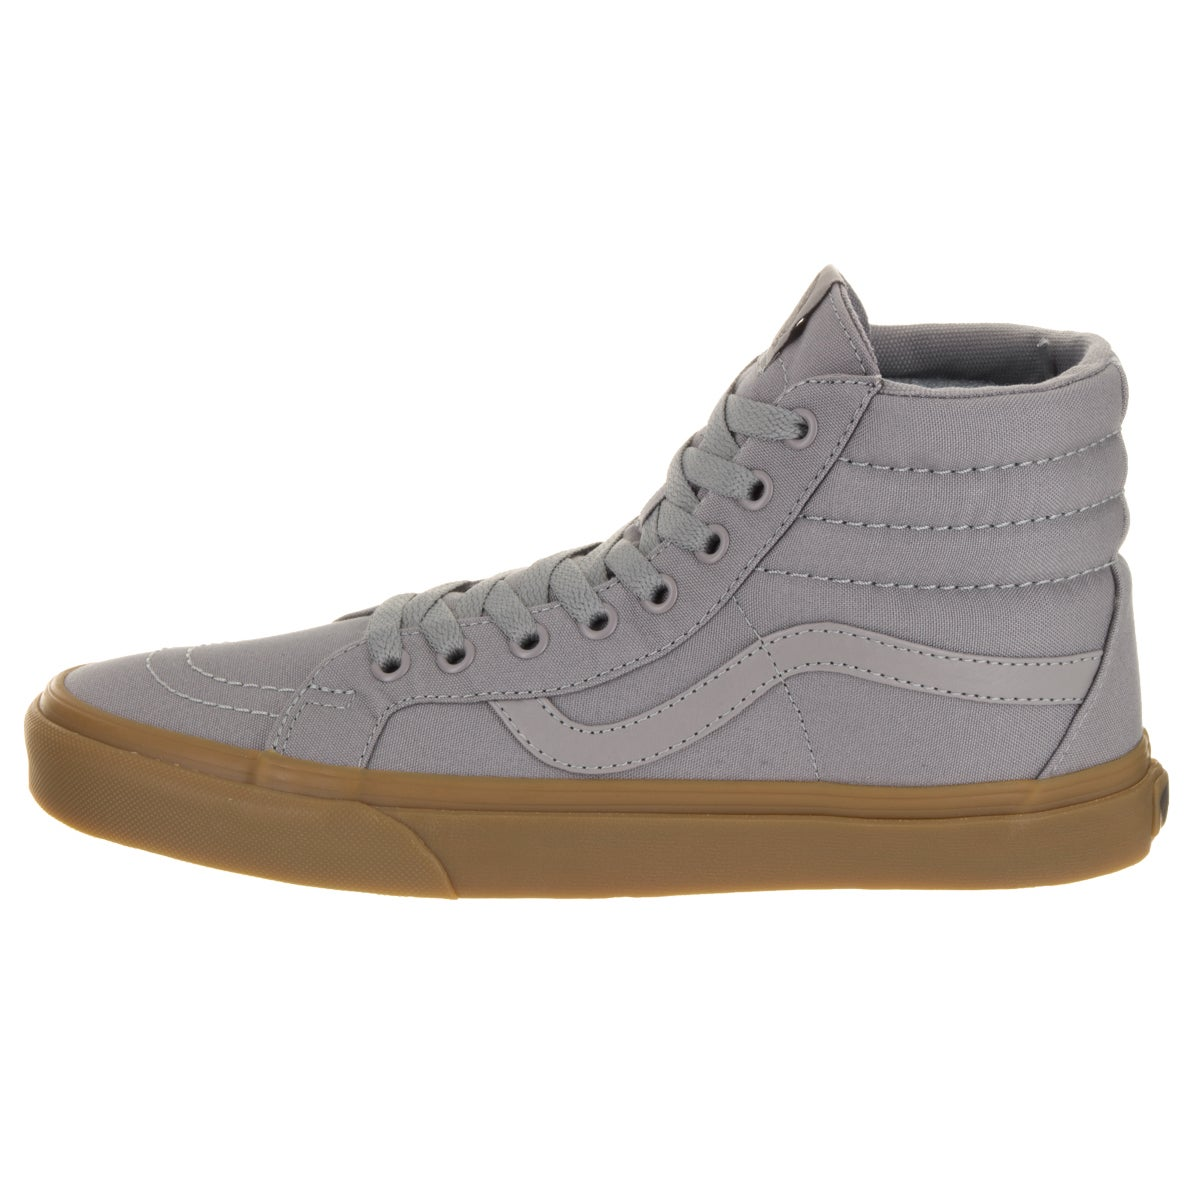 8a96fe67e441 Shop Vans Unisex Sk8-Hi Reissue Frosty Grey and Light Gum Canvas Skate Shoe  - Free Shipping Today - Overstock.com - 13680016